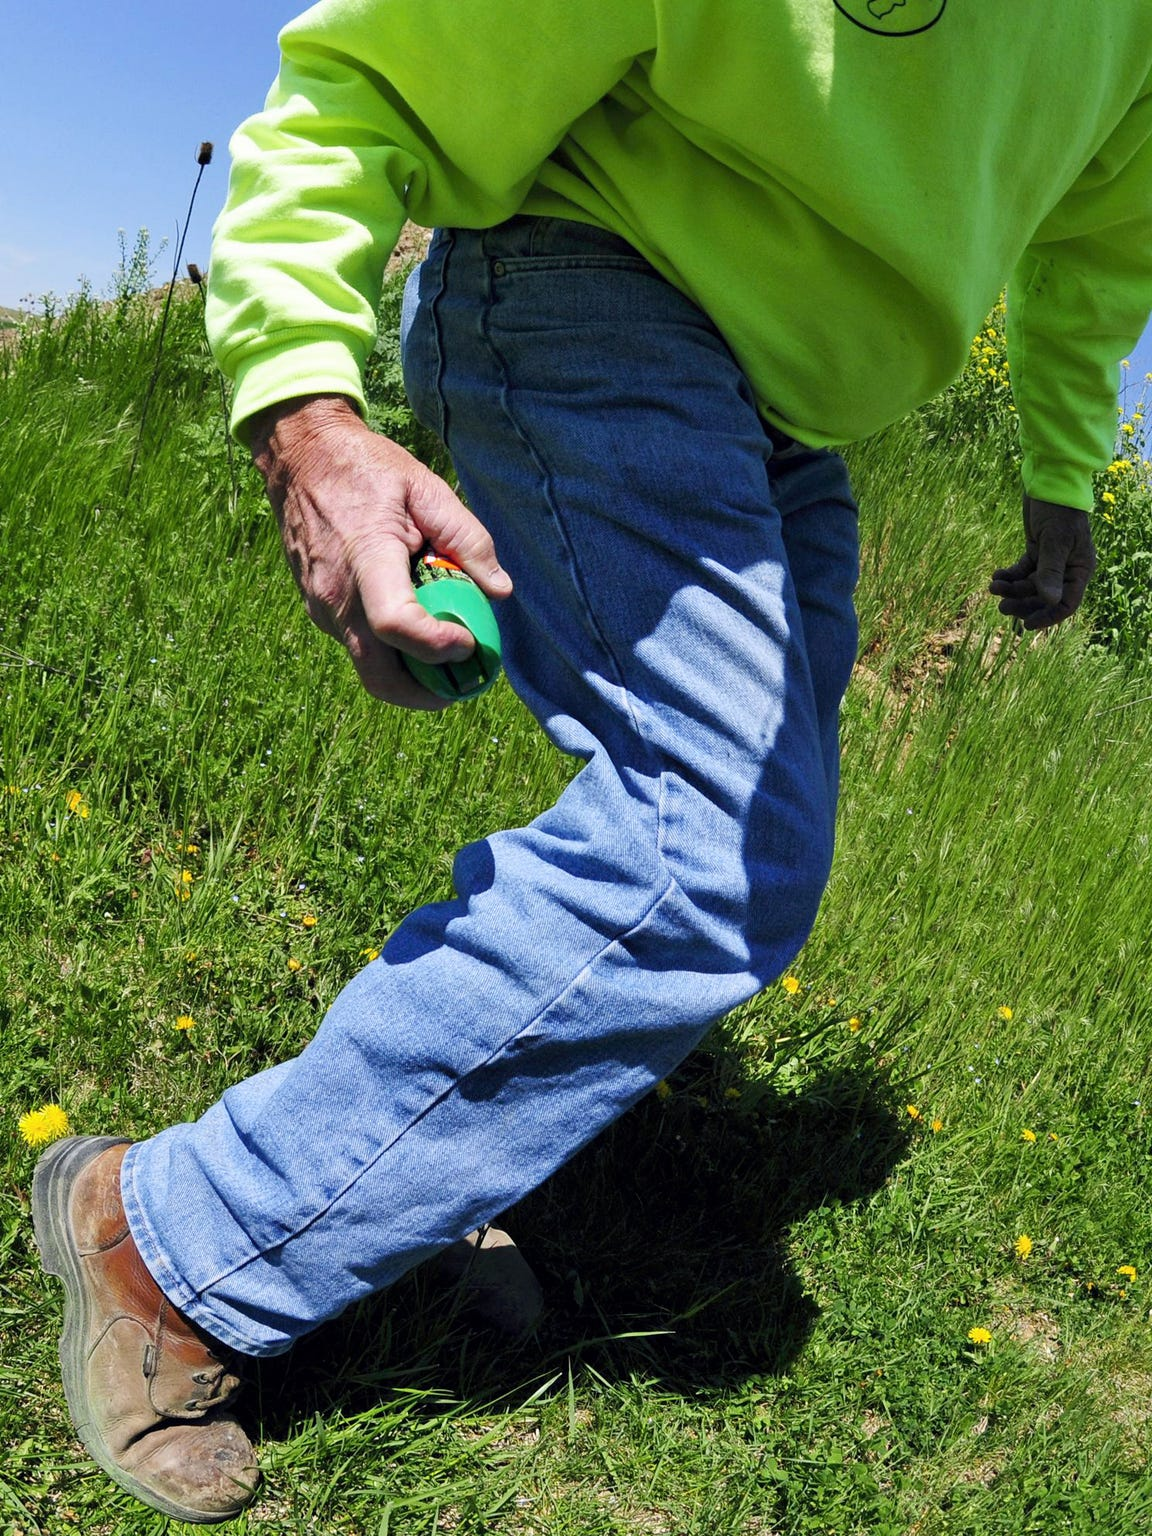 Randy Negley, who has battled Lyme disease, recommends tick repellents as prevention.